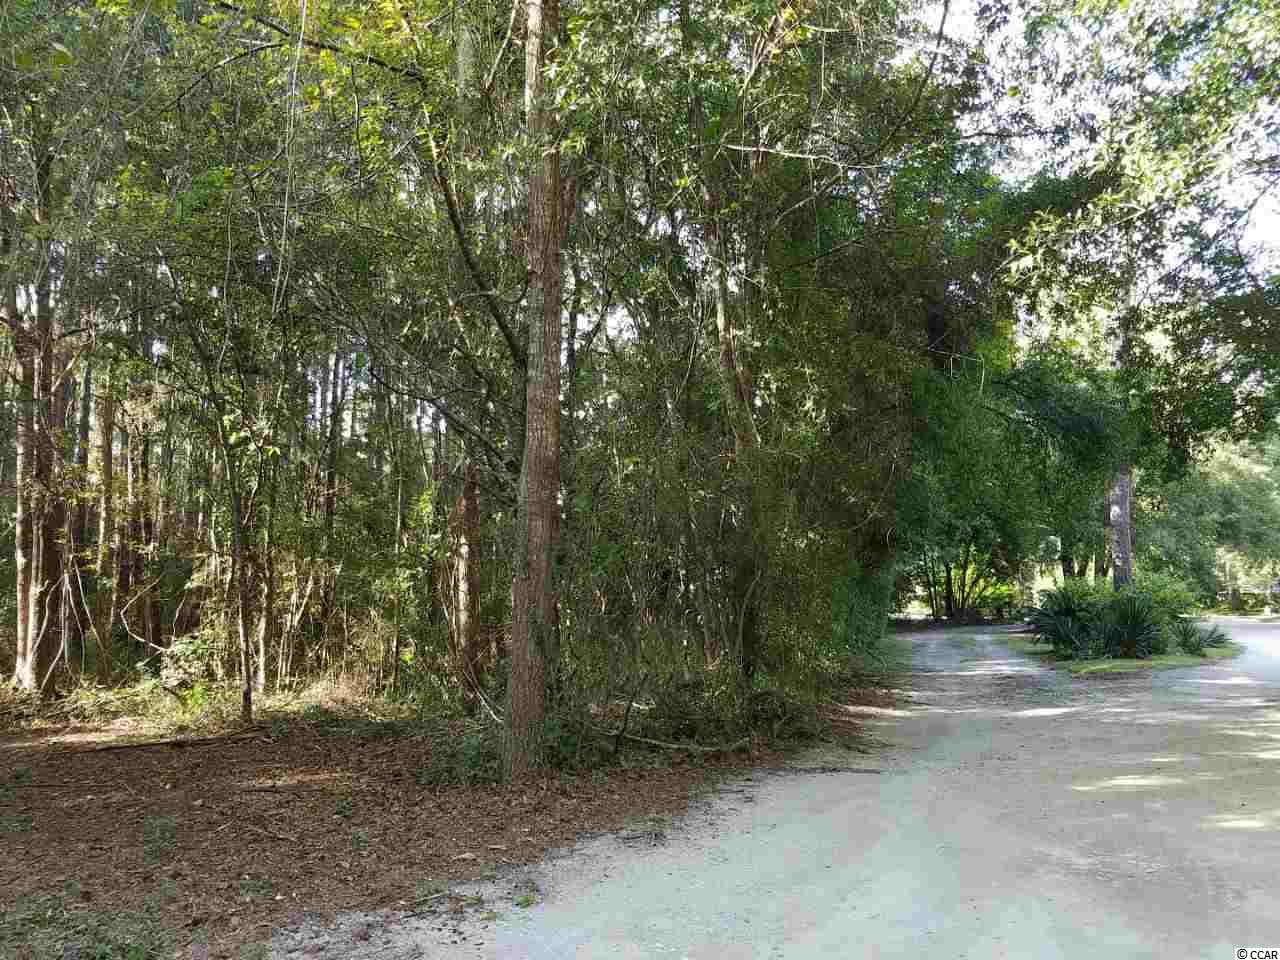 This beautiful .62 acre homesite is located in a small, creekside neighborhood in the area of the South Causeway to Pawleys Island. This private neighborhood has an HOA, and 17 homesites with primary and 2nd homes. Convenient to Pawleys Island beach access, grocery stores, restaurants, and all that Pawleys has to offer.